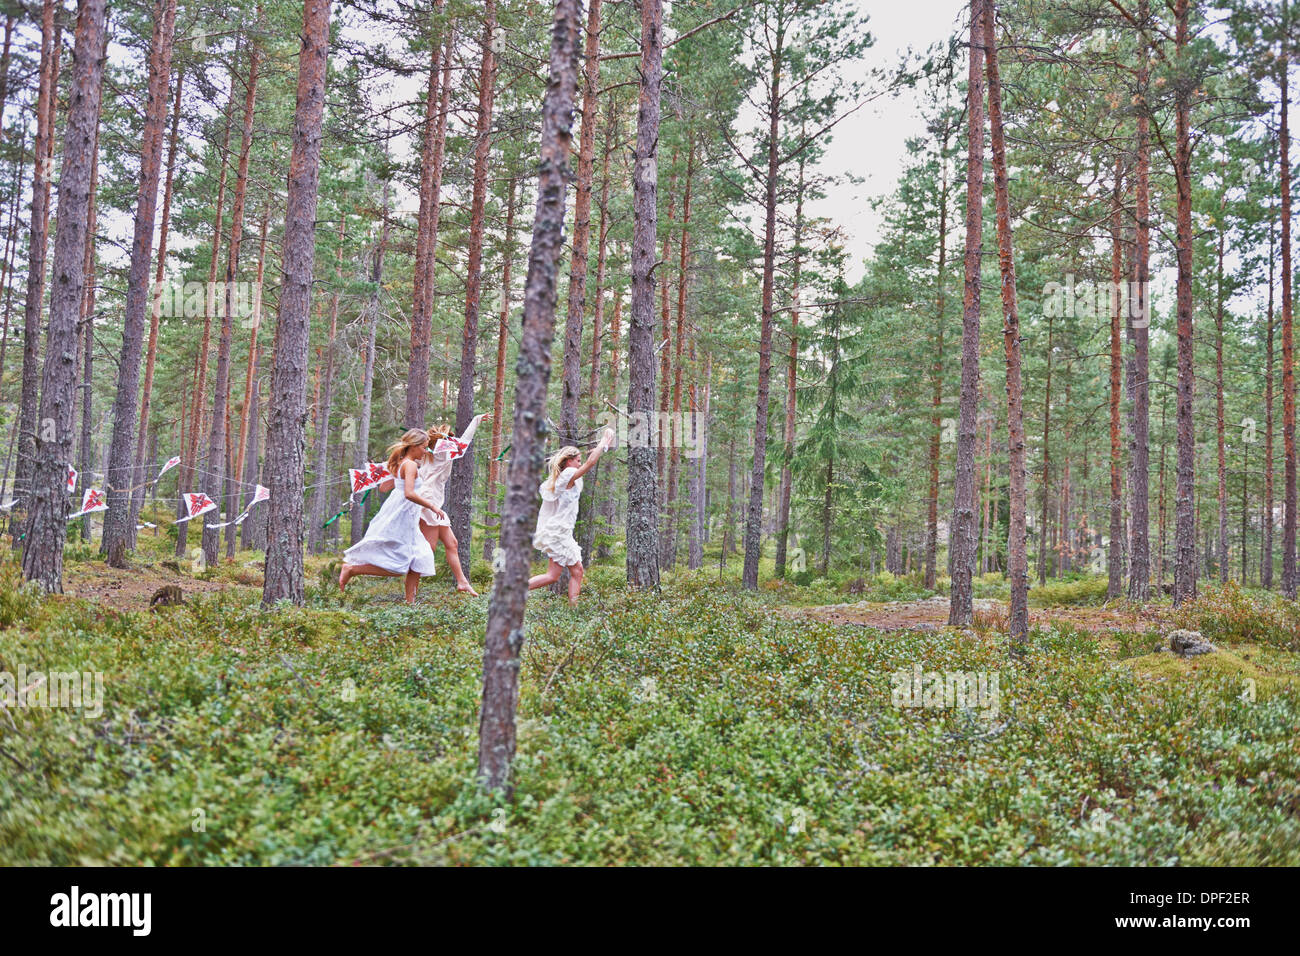 Teenage girls running in forest with kites - Stock Image